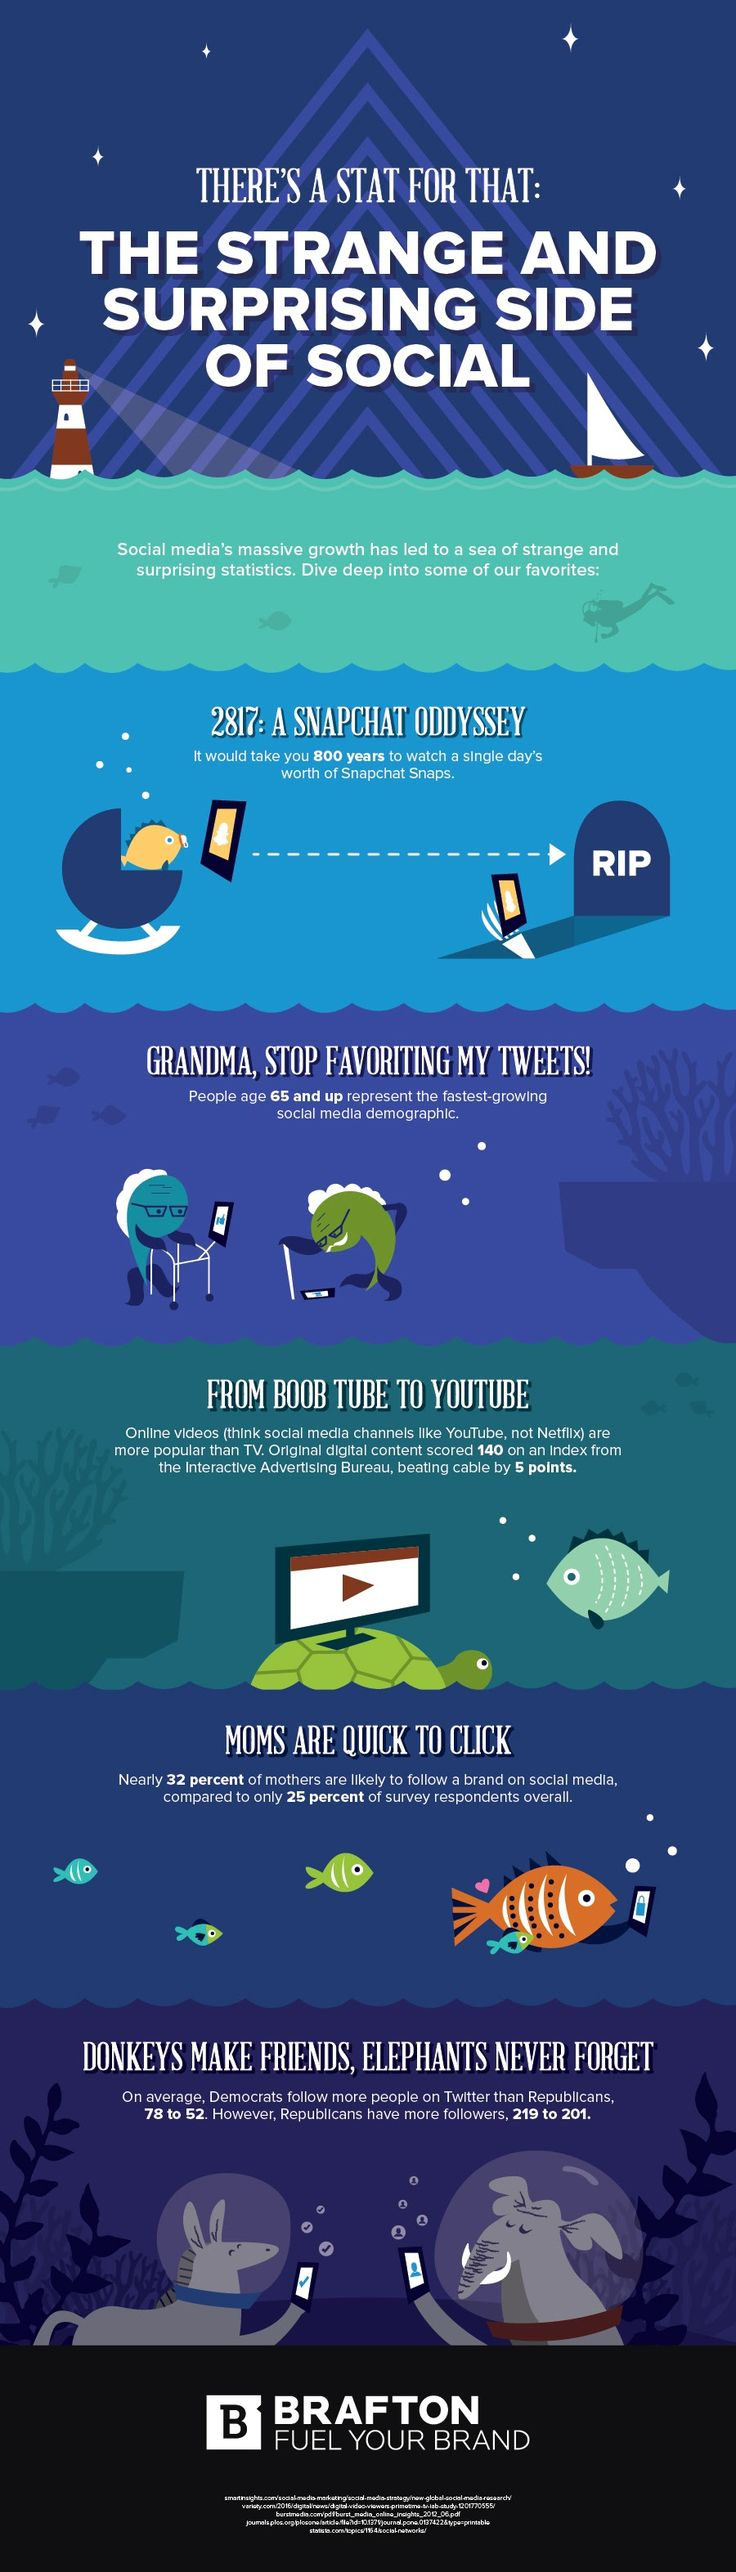 There's a Stat For That: The Strange And Surprising Side Of Social - #infographic